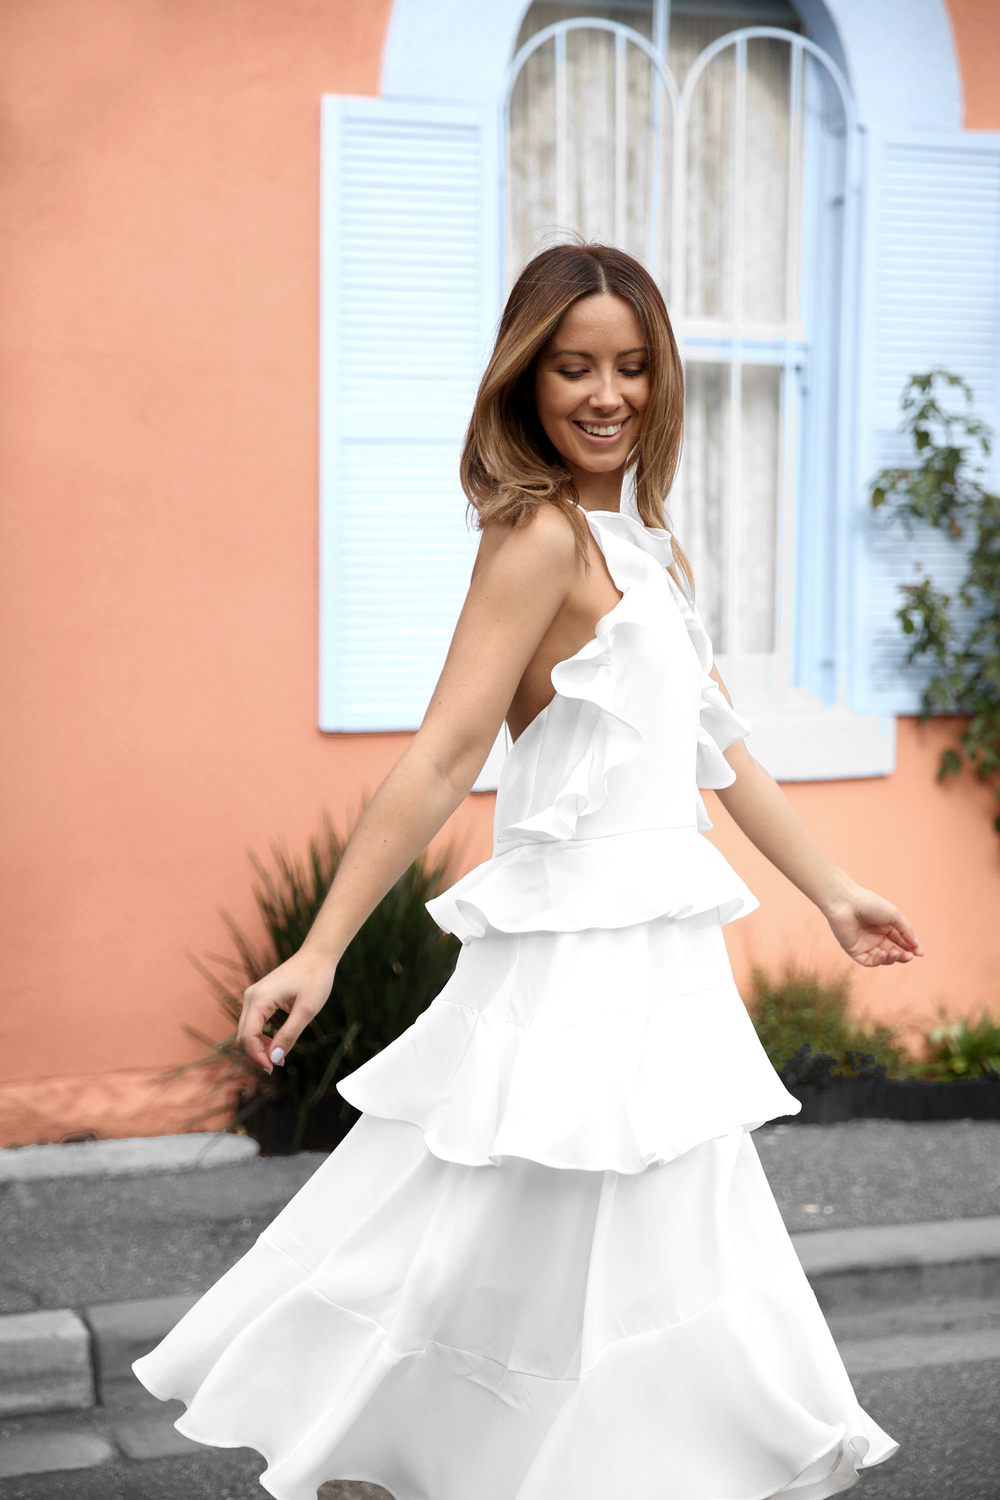 FriendInFashion_WhiteDress_StreetStyle_Vogue_10.jpg